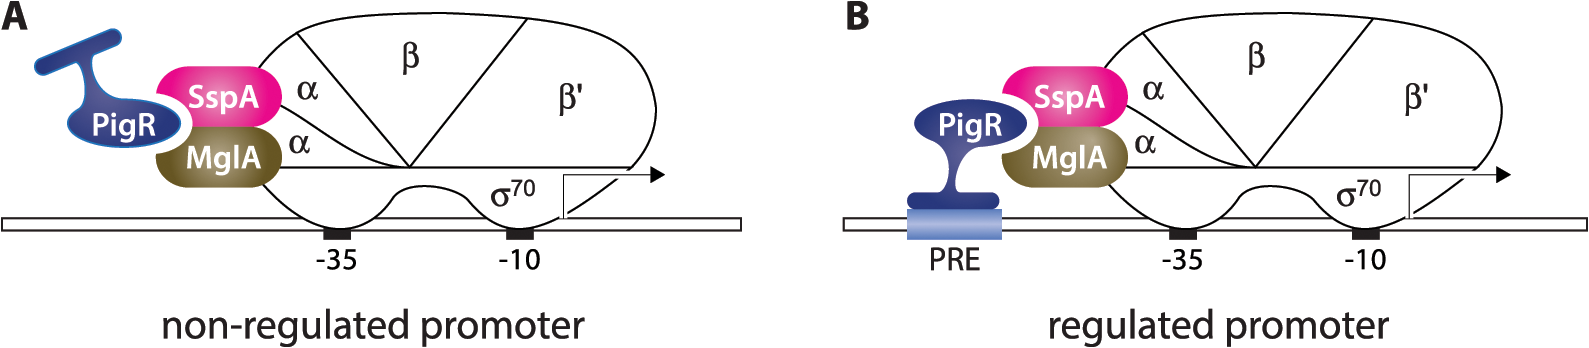 Model for how PigR functions coordinately with the MglA-SspA complex to positively control the expression of genes.